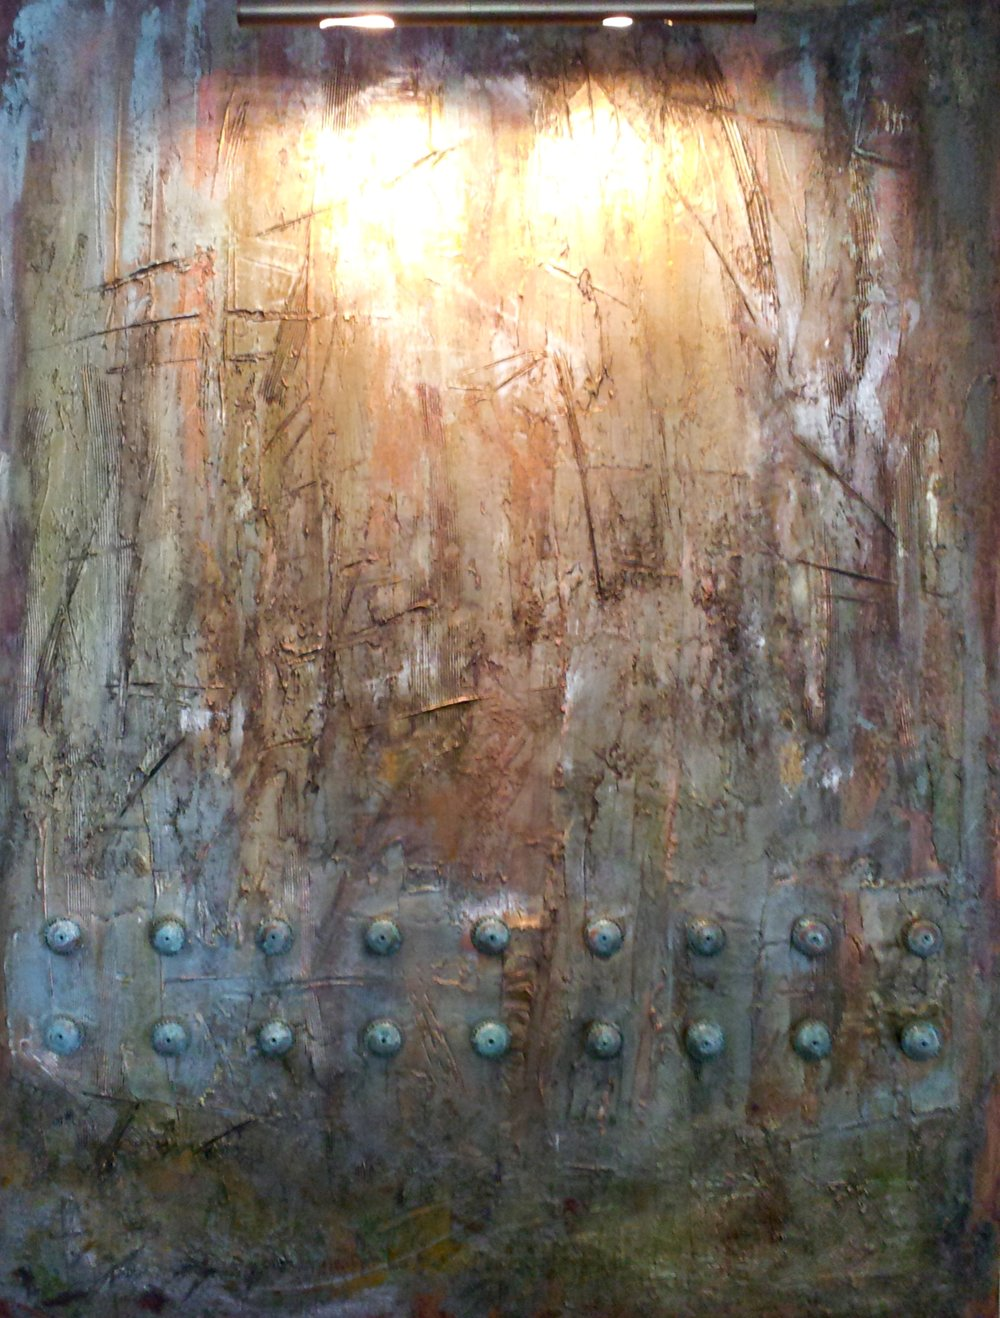 The Effects of Light  Mixed media and oxidized copper on canvas  48 x 36 x 1.5 inches  $3,640